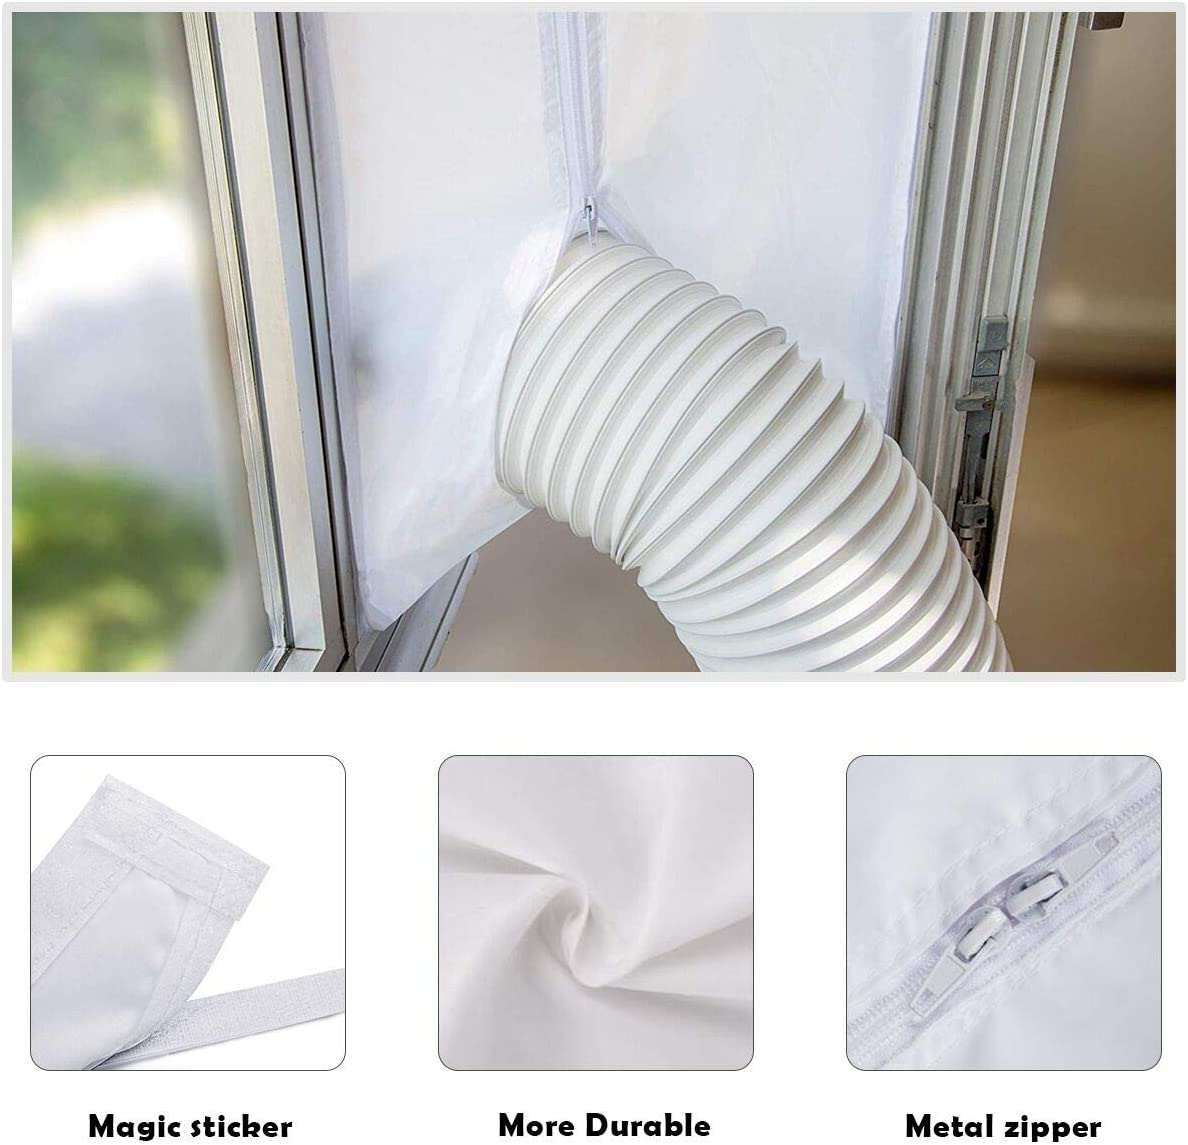 300CM Universal Window Seal for Portable Air Conditioning Unit And Dryer with Tape and Zipper Design No Need For Drilling Holes Uong Window Seal Air Conditioning Easy to Install